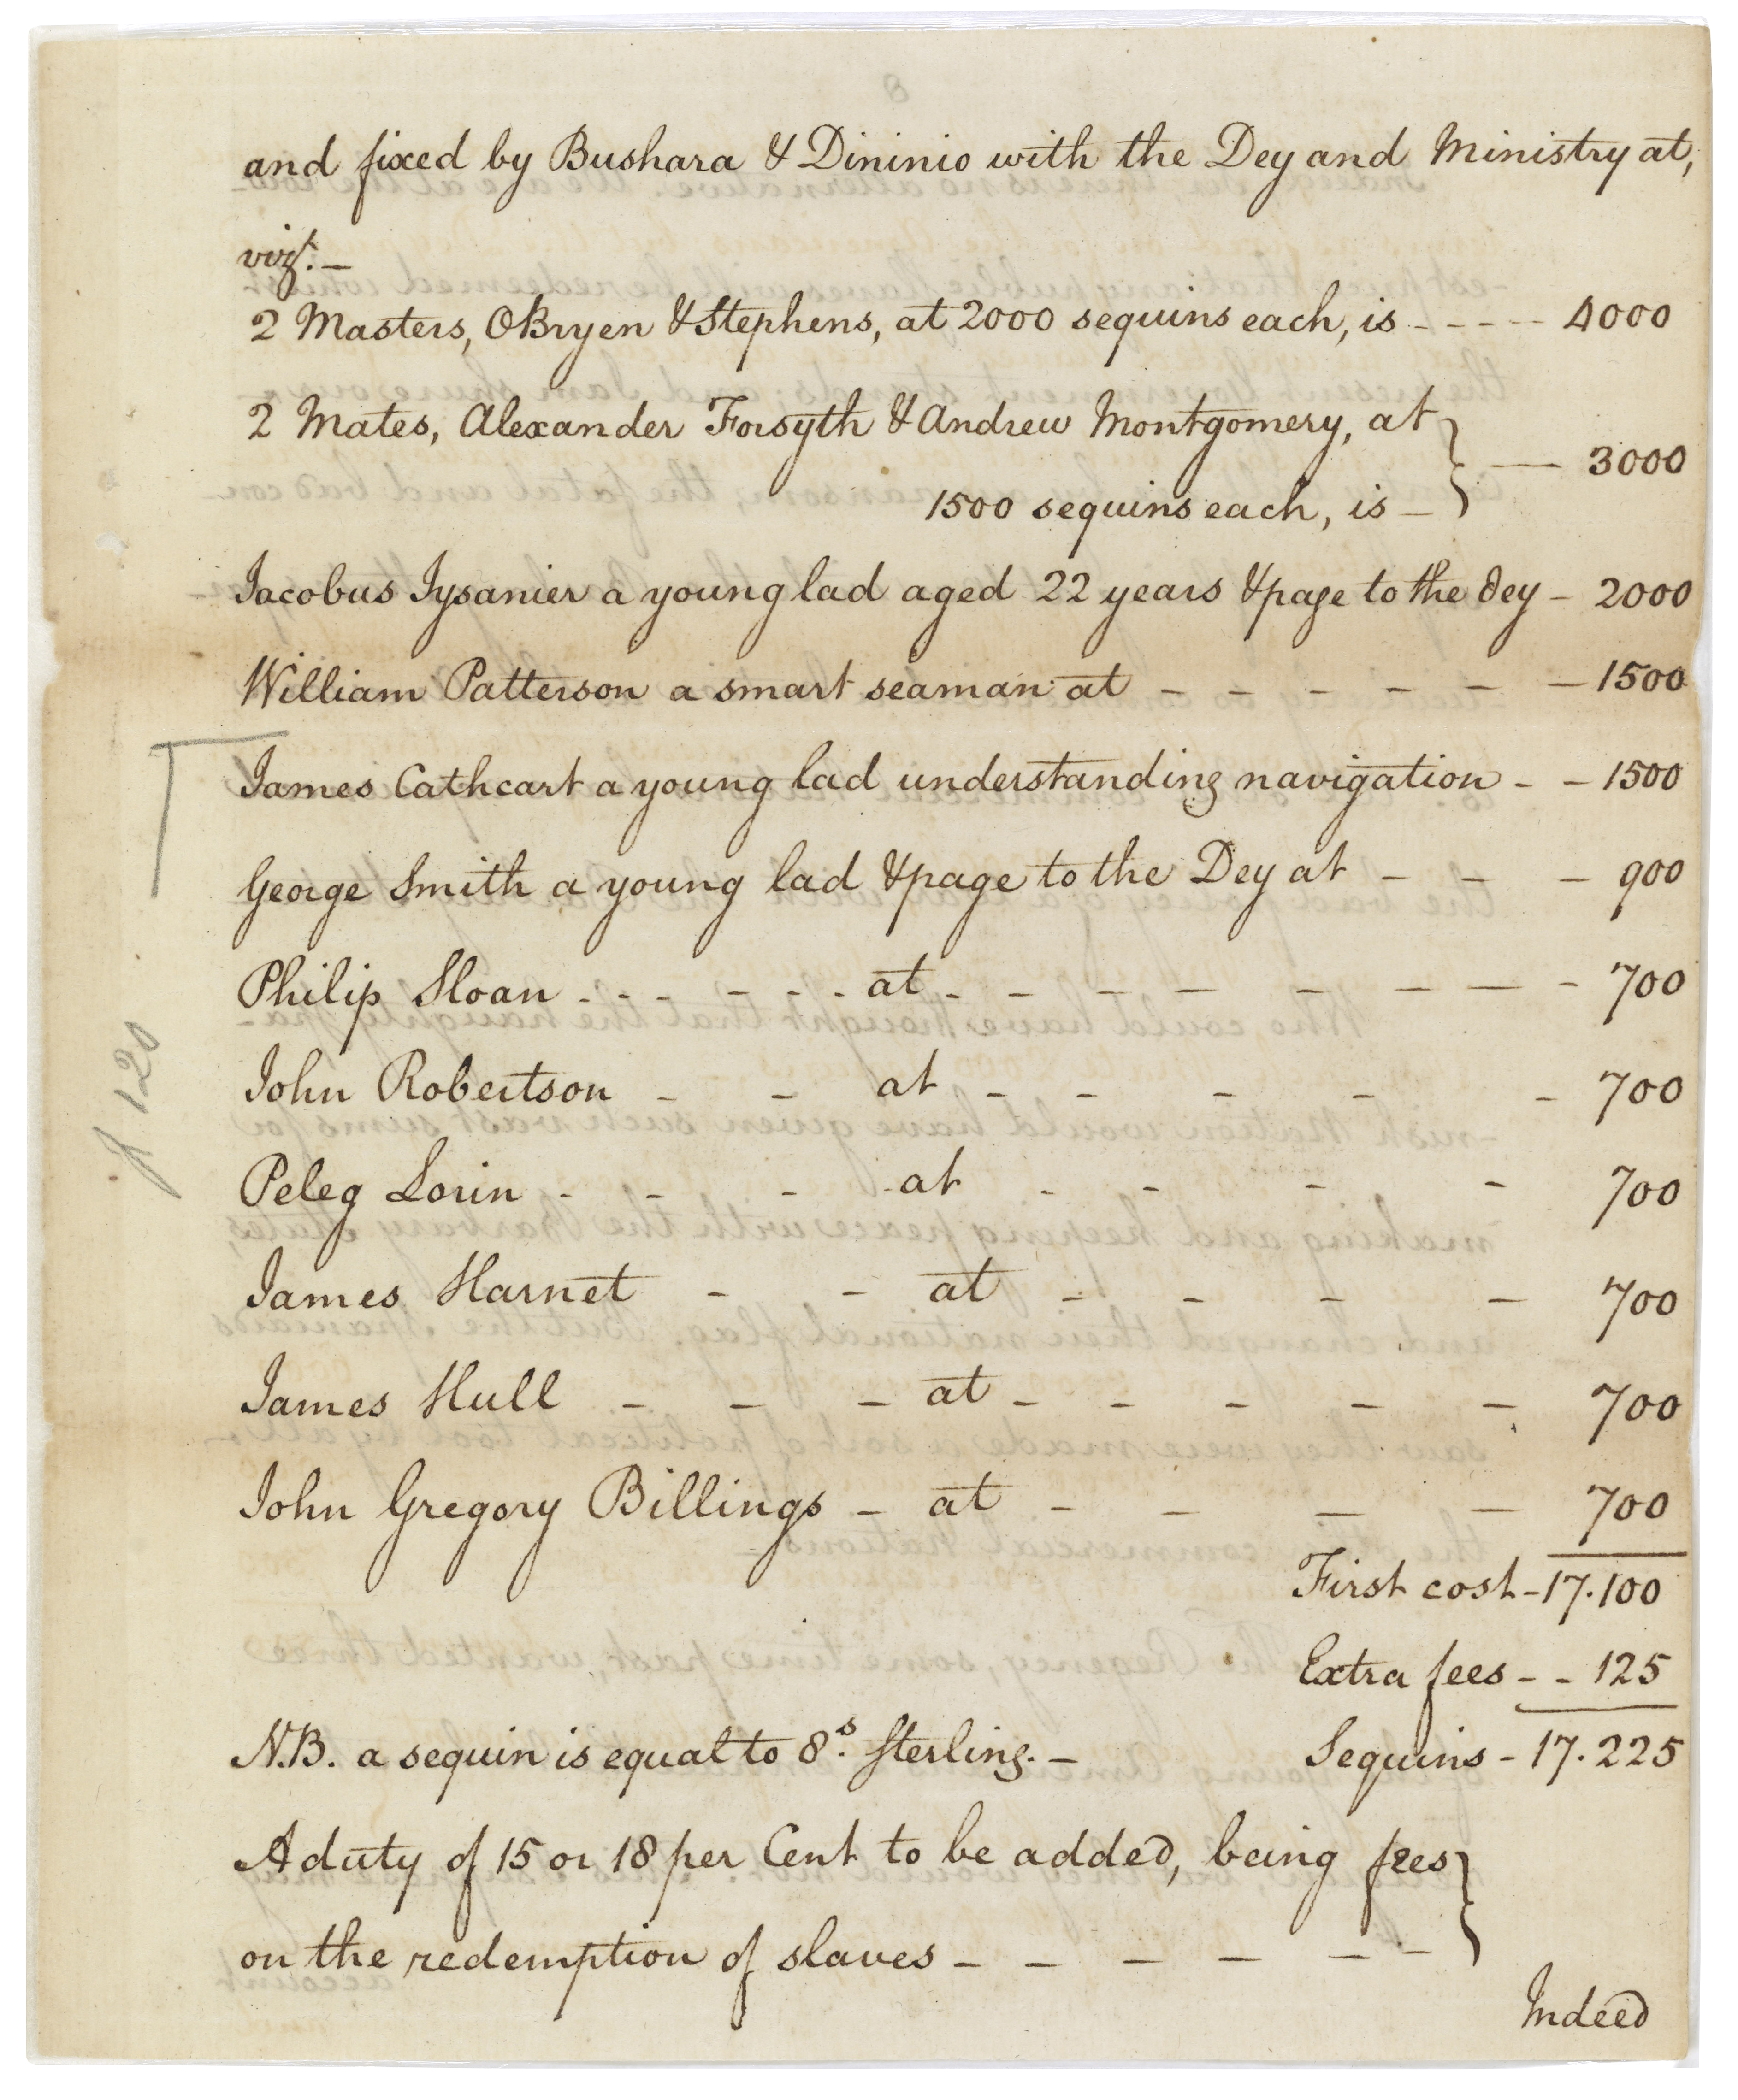 Richard O'Bryen's letter to Thomas Jefferson, page showing ransom rates, July 12, 1790. (Records of the U.S. Senate, National Archives)